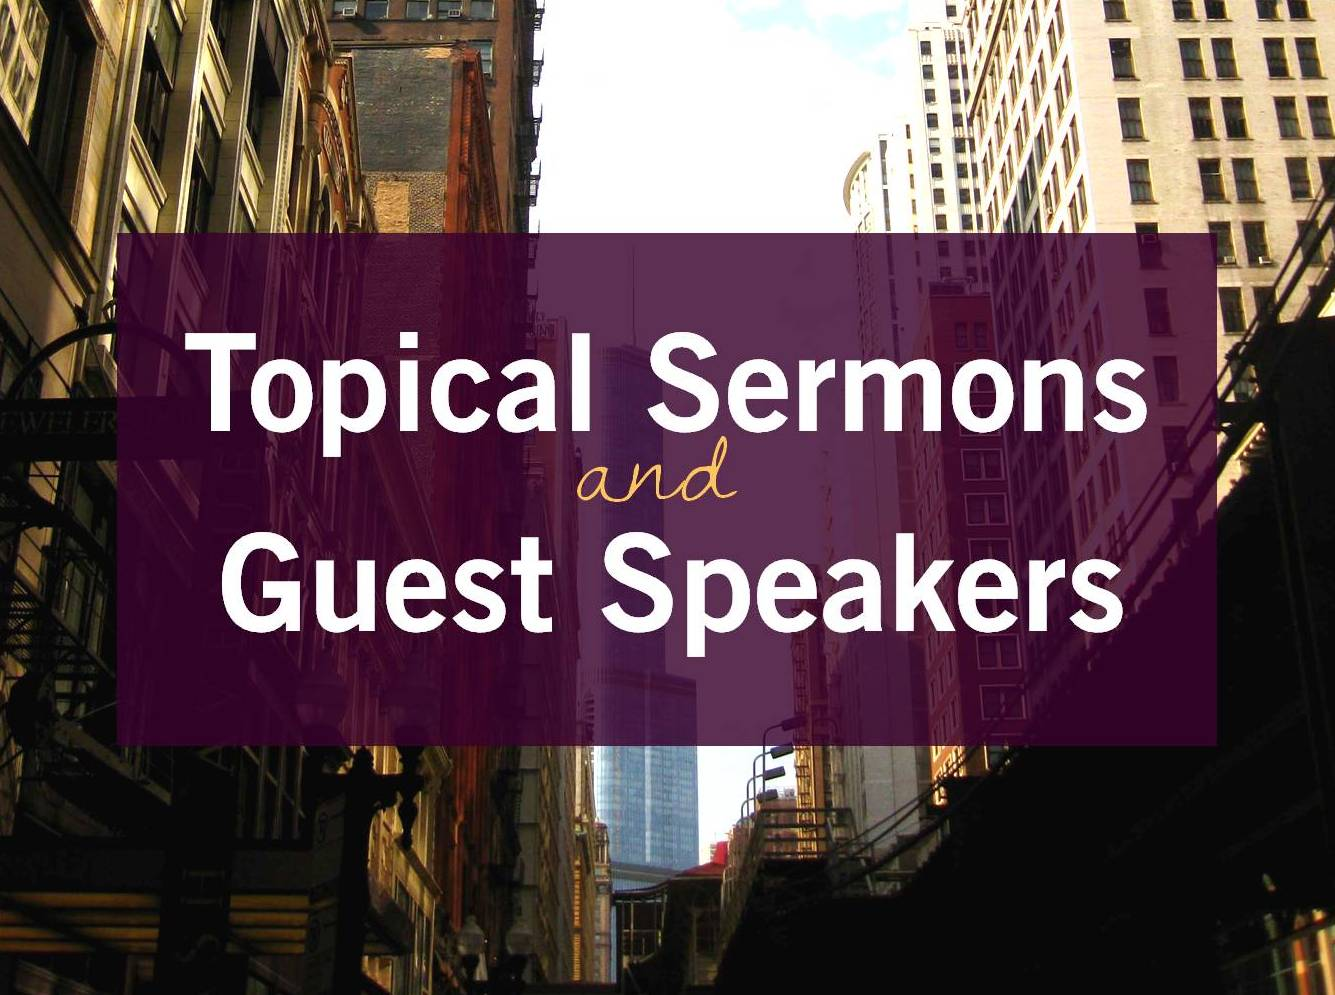 topical sermons and guest speakers.jpg